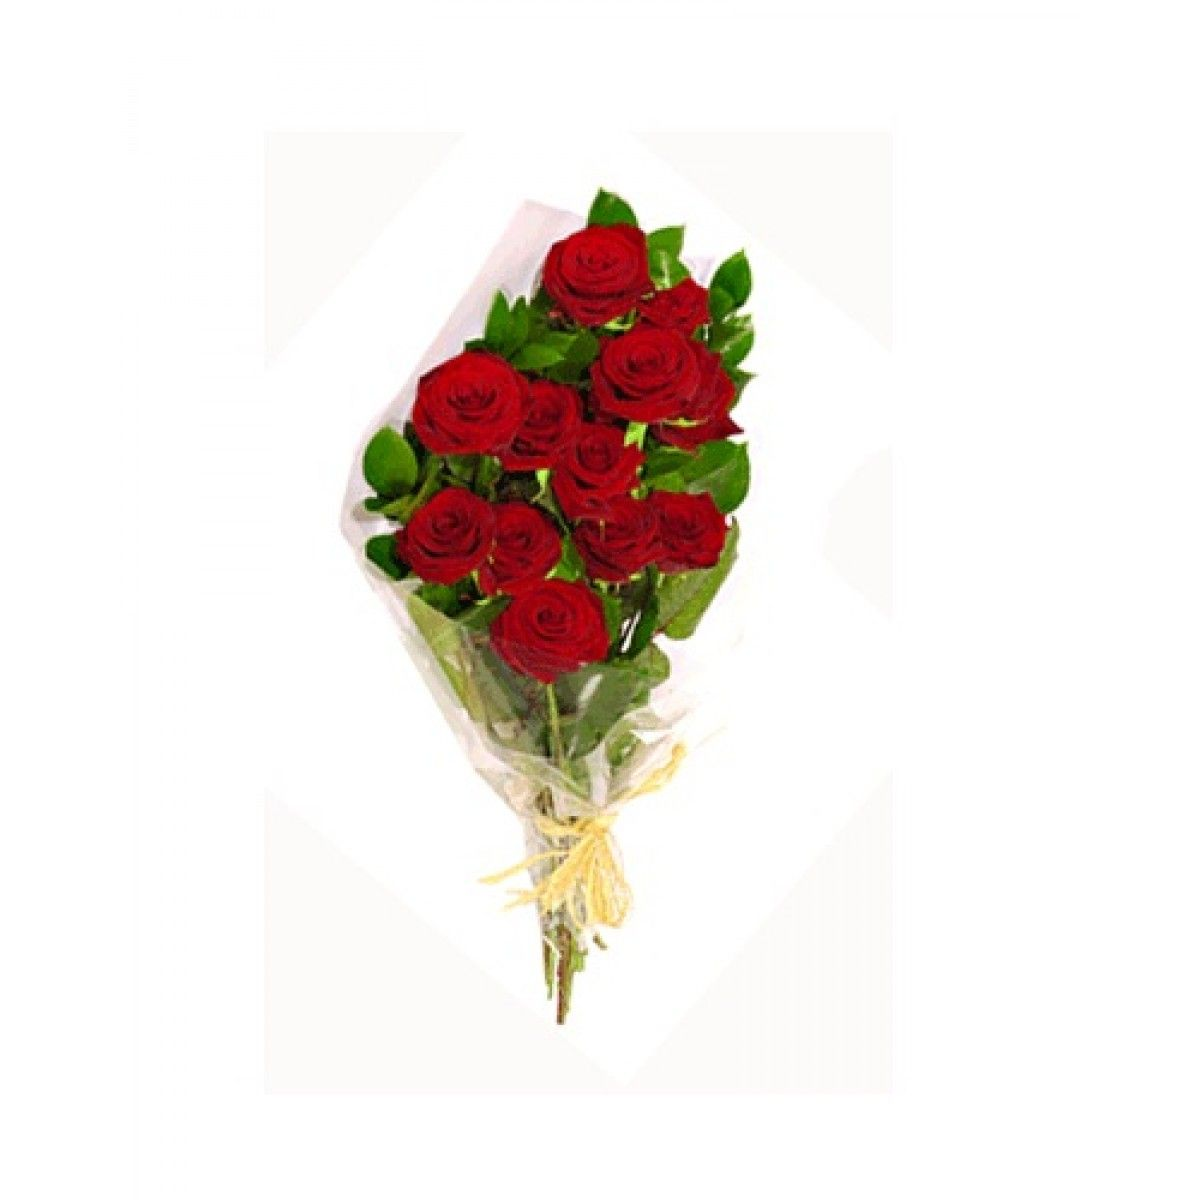 Regal red roses online flowers delivery in mumbai pinterest regal red roses the deluxe ten red roses in classic arrangement supported with green petals and twigs to give it more natural feel izmirmasajfo